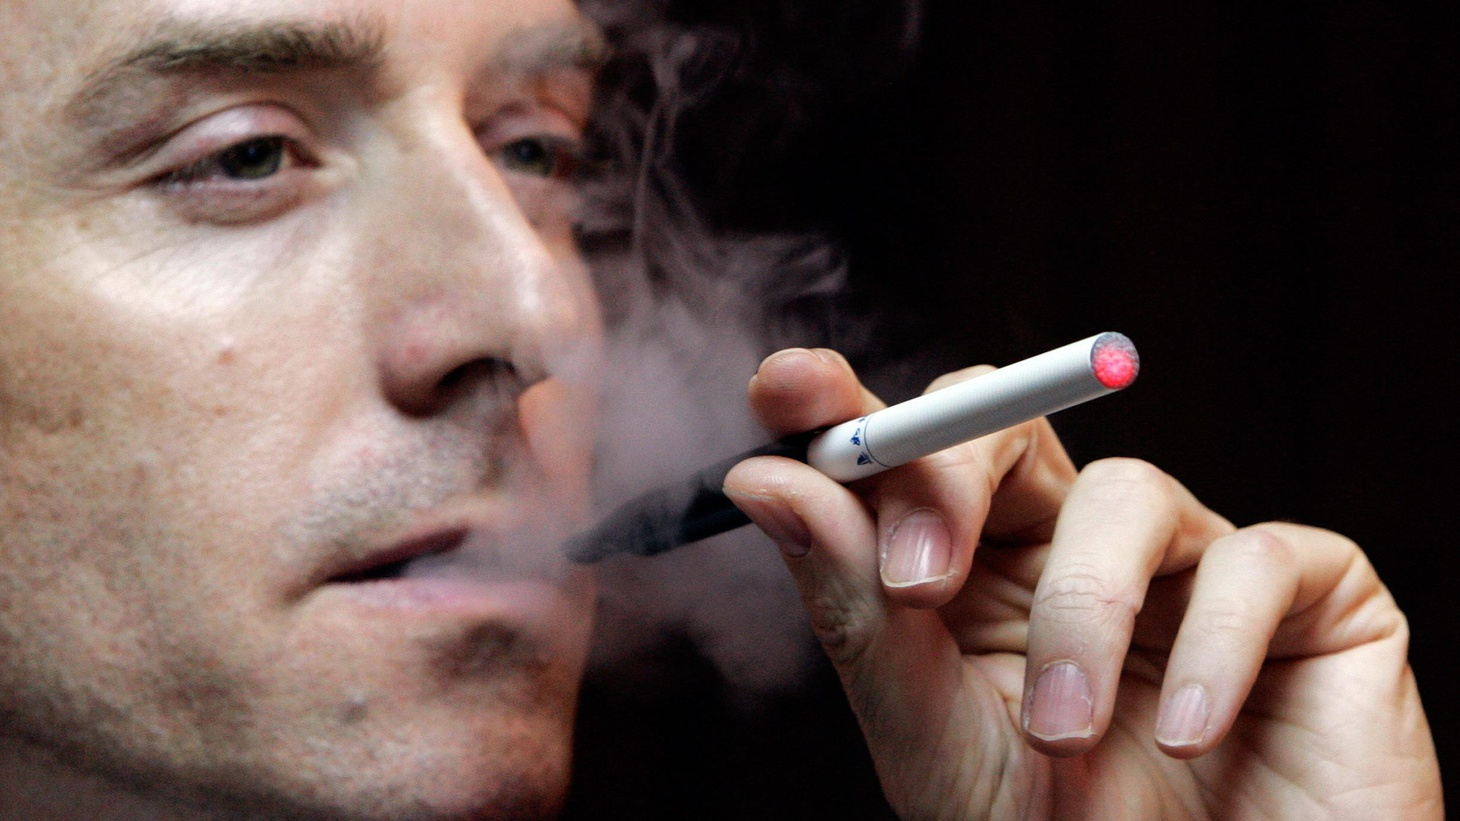 """The FDA hasn't been heard from, but an LA City Councilman calls inhaling e-cigarettes a """"deadly habit."""" We hear about yesterday's unanimous decision to regulate sales."""